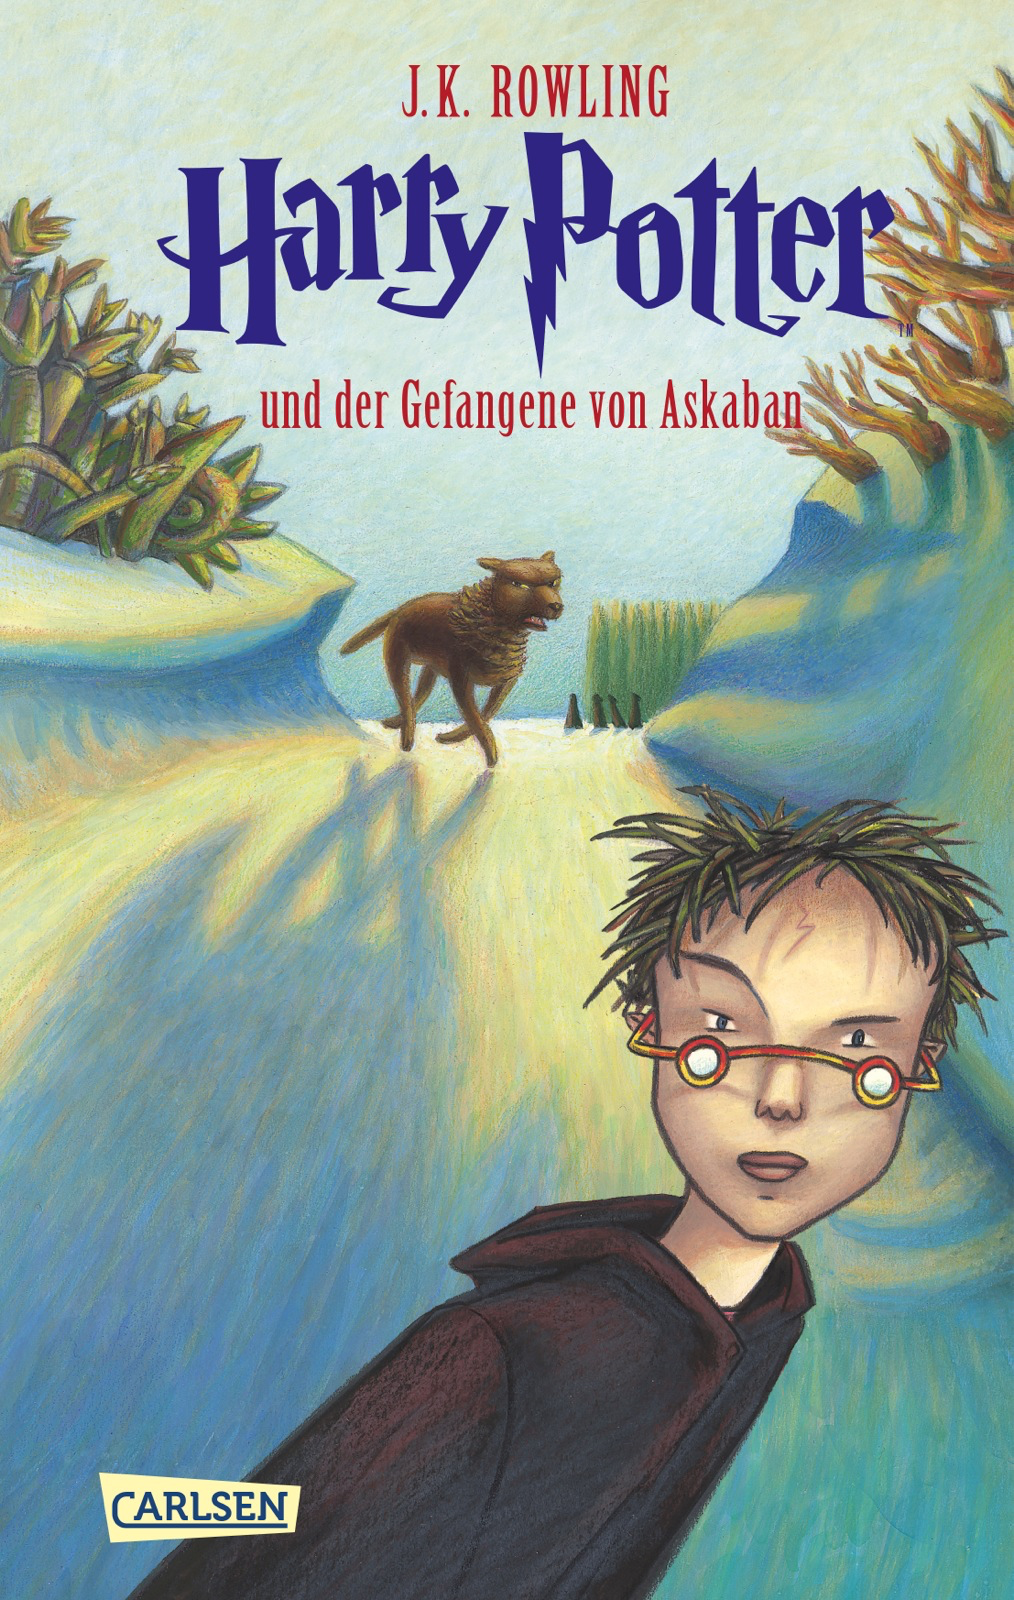 German children's cover